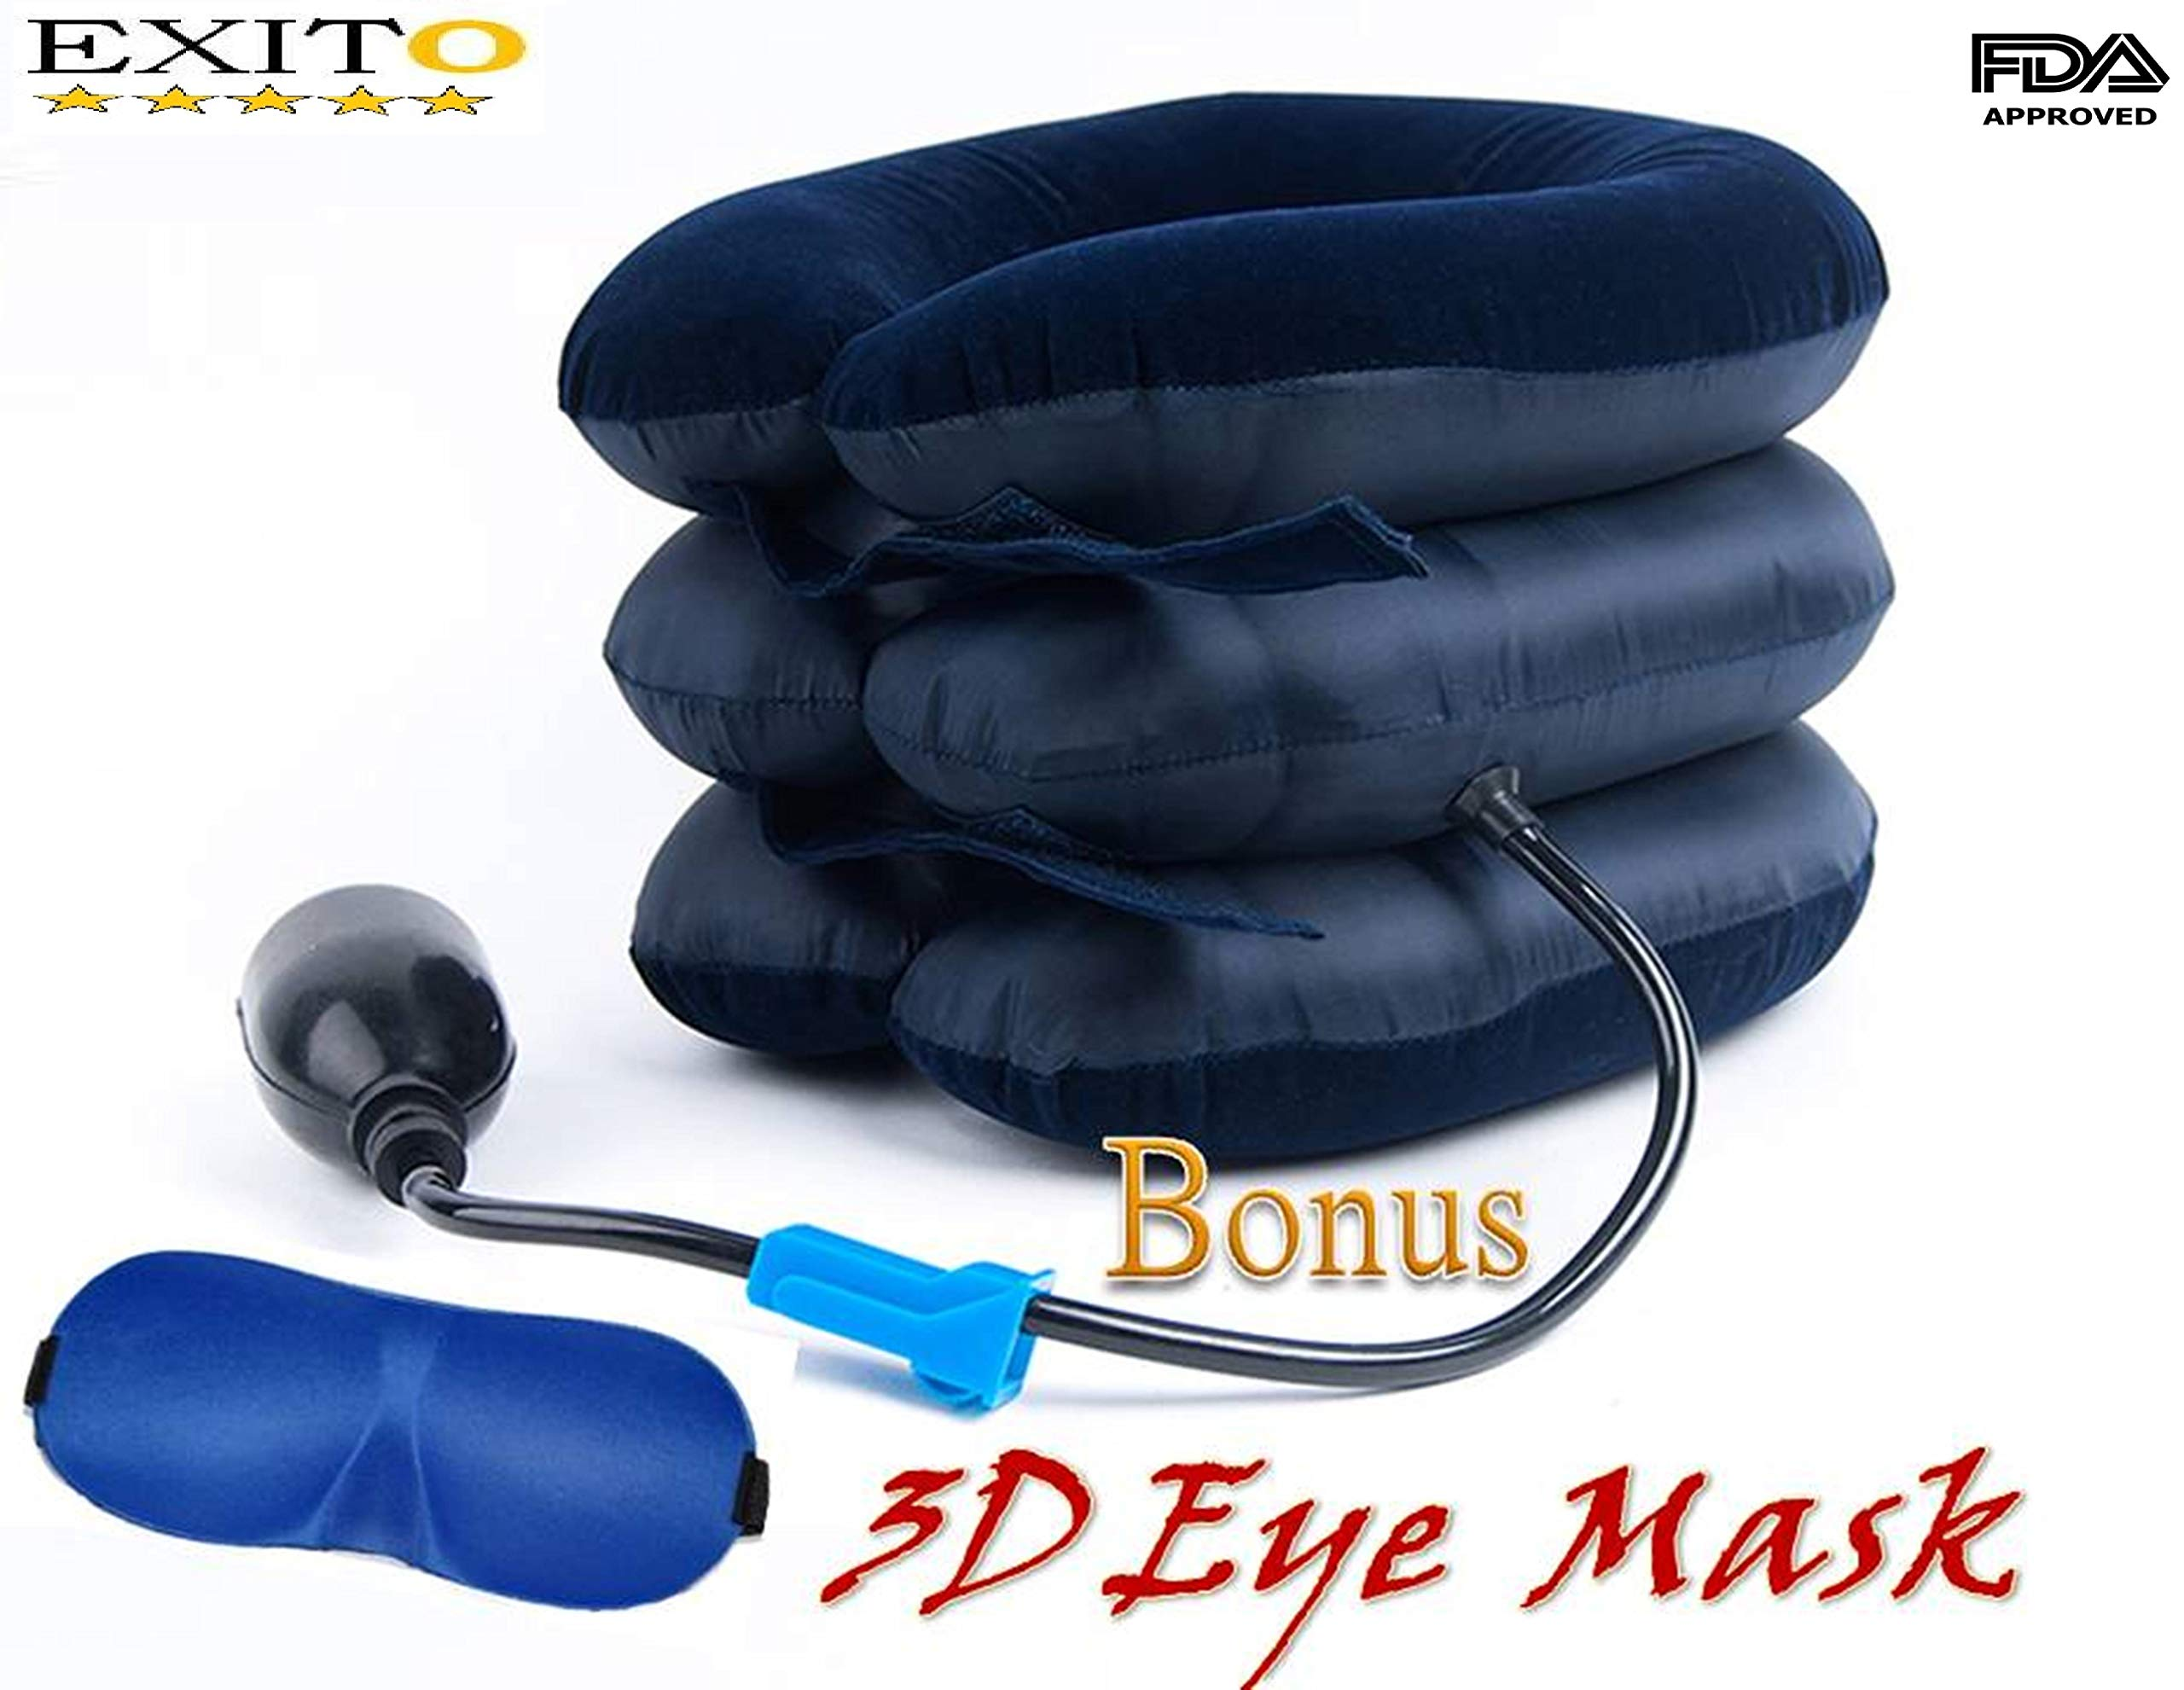 Cervical Neck Traction Device Inflatable Pillow,FDA Registered, EXITO Effective and Instant Relief for Chronic Neck and Head & Shoulder Pain Extra Bonus Eye Mask, Cervical tracción